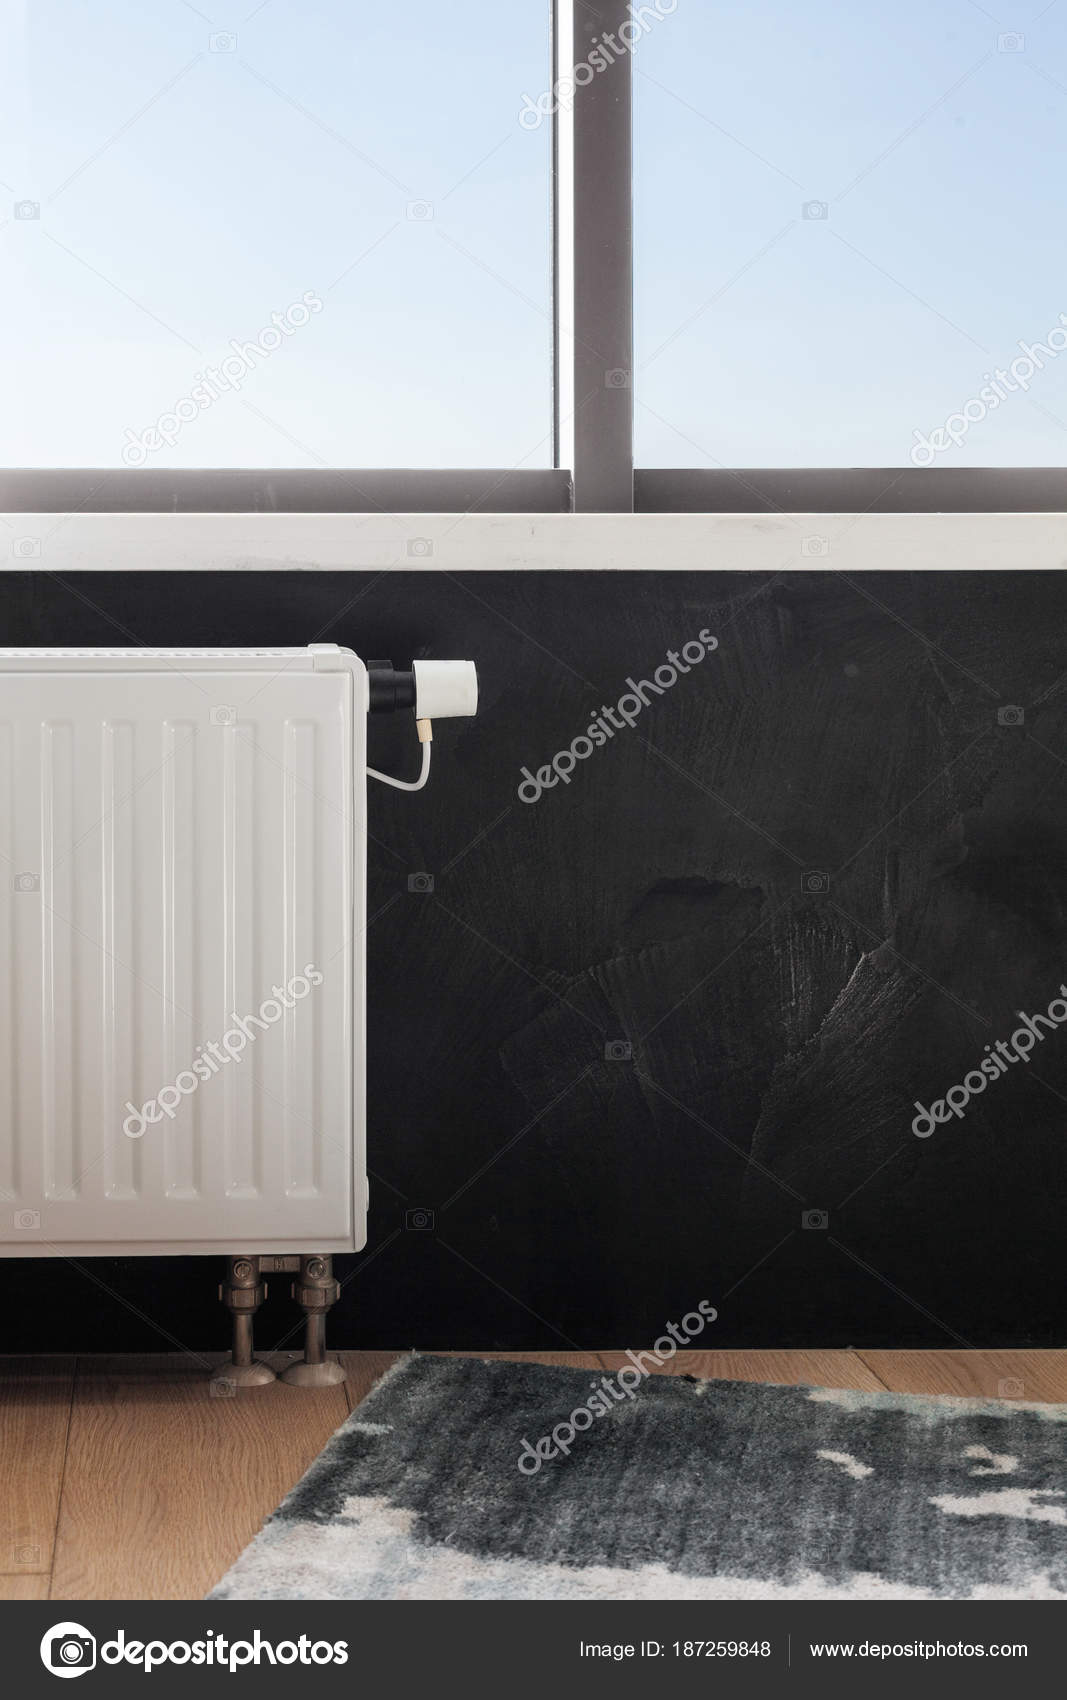 Full Size of Heating White Radiator With Adjuster Of Warming In Living Room. Wohnzimmer Heizkörper Wohnzimmer